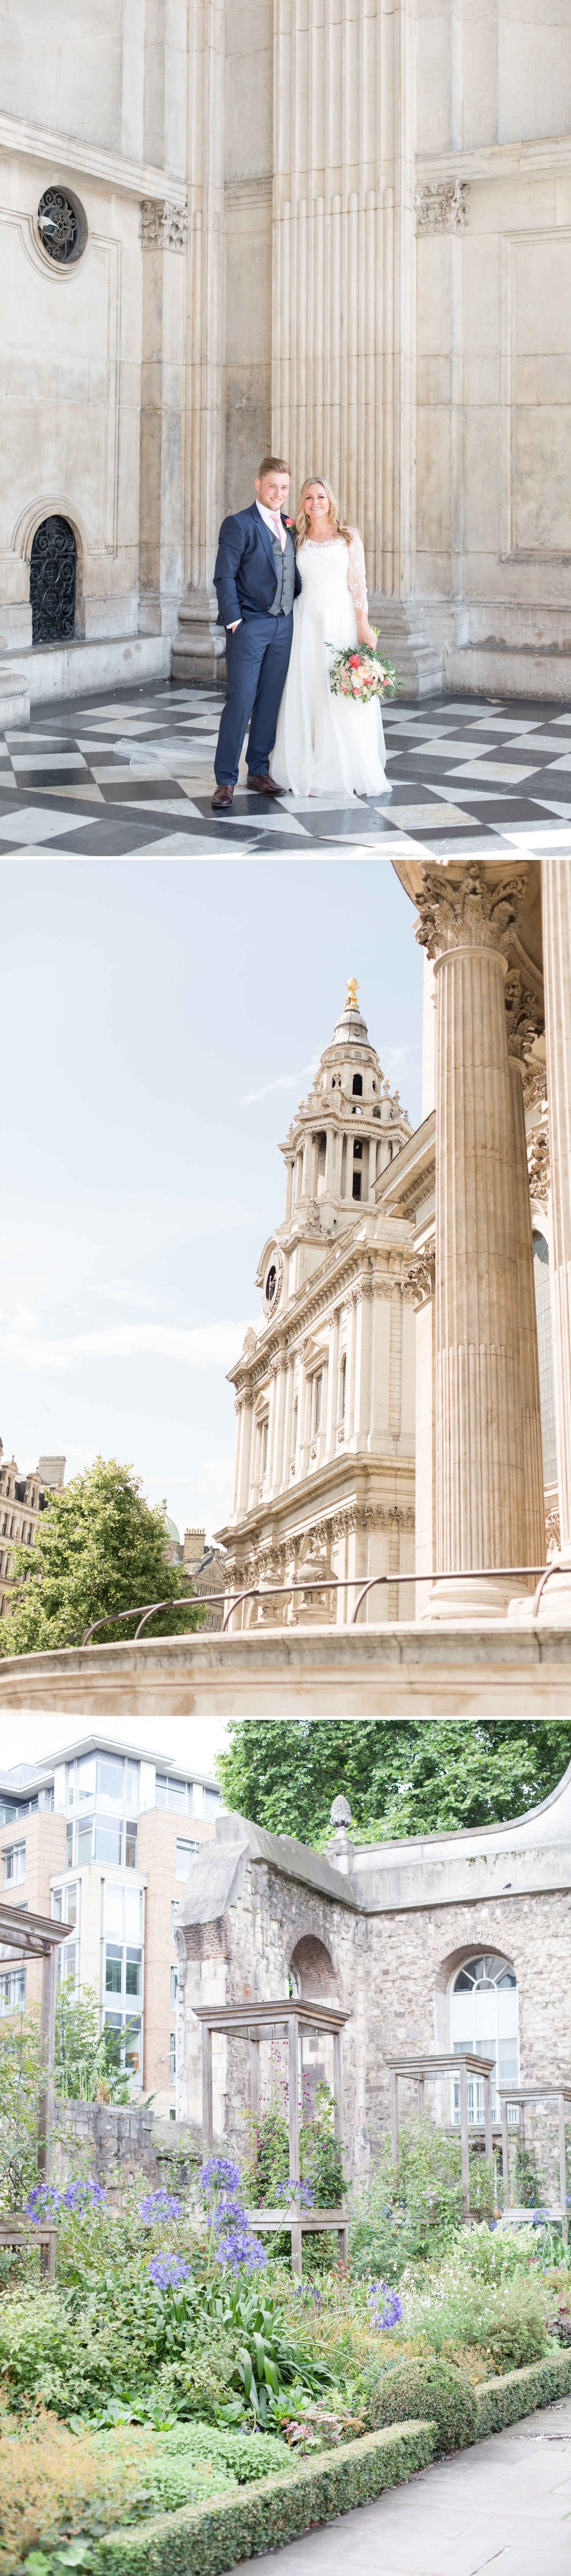 Charlotte & Adam's St. Paul's Cathedral wedding - a bride & groom on the steps of St. Paul's